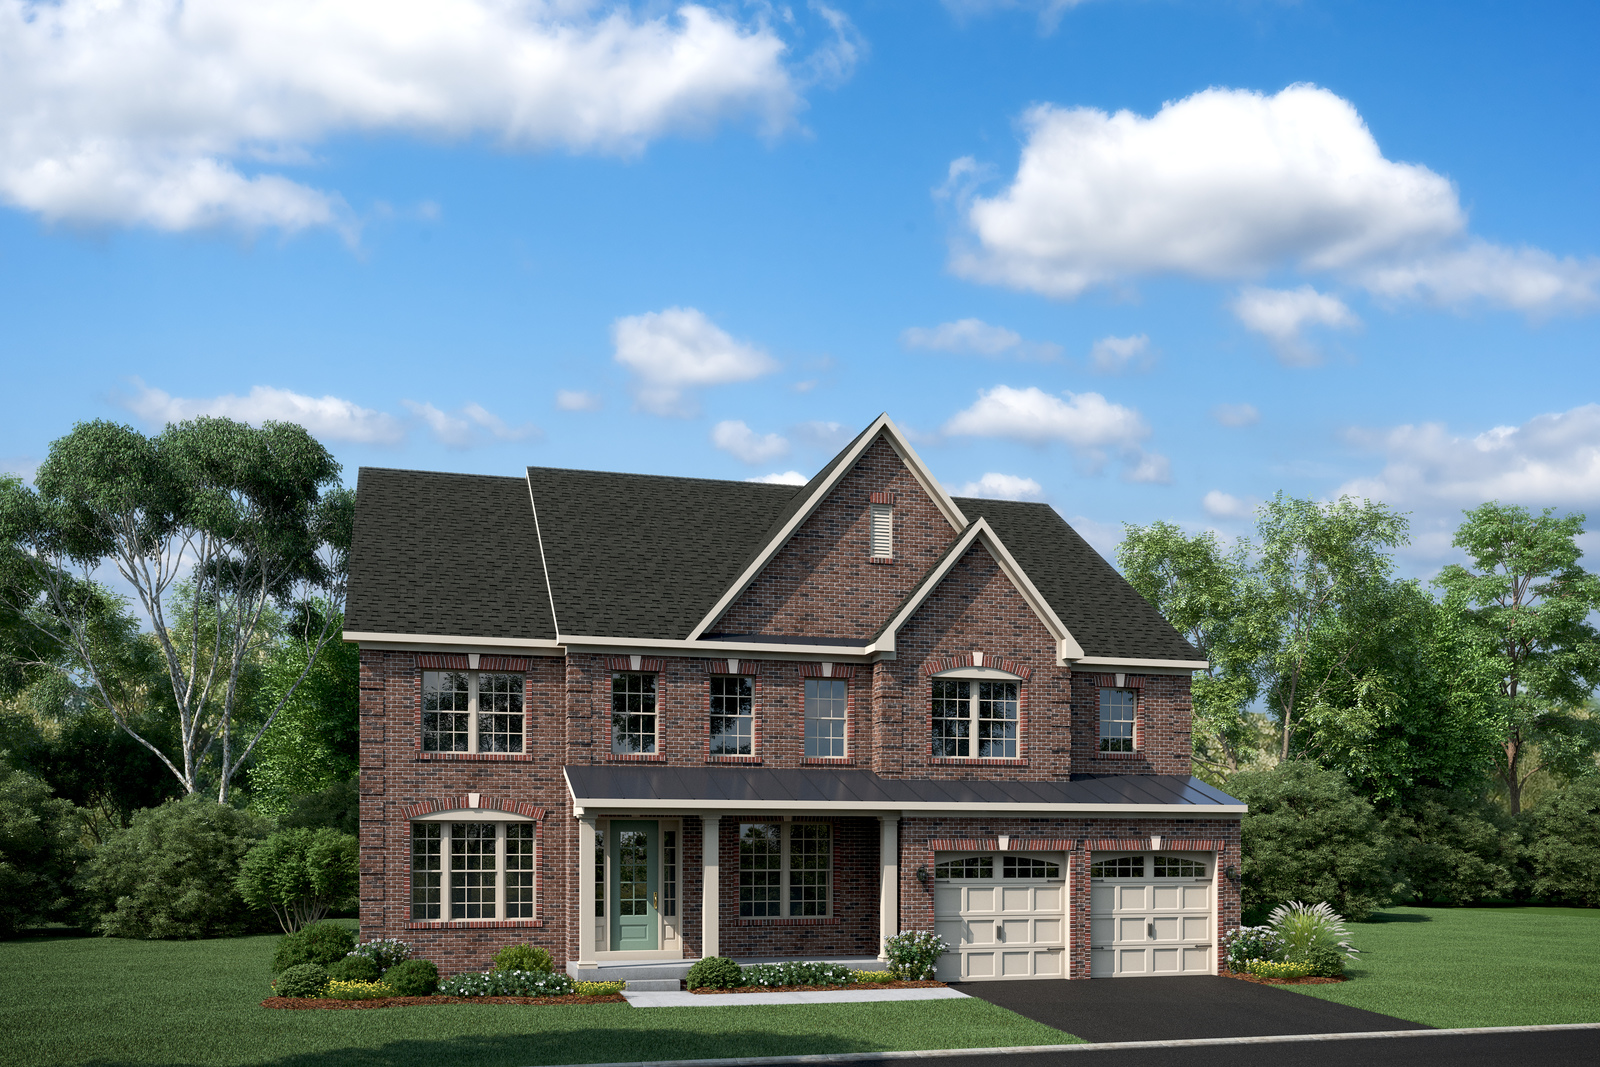 With handsome curb appeal and stately details, the Stratford Hall is one of our most popular plans.